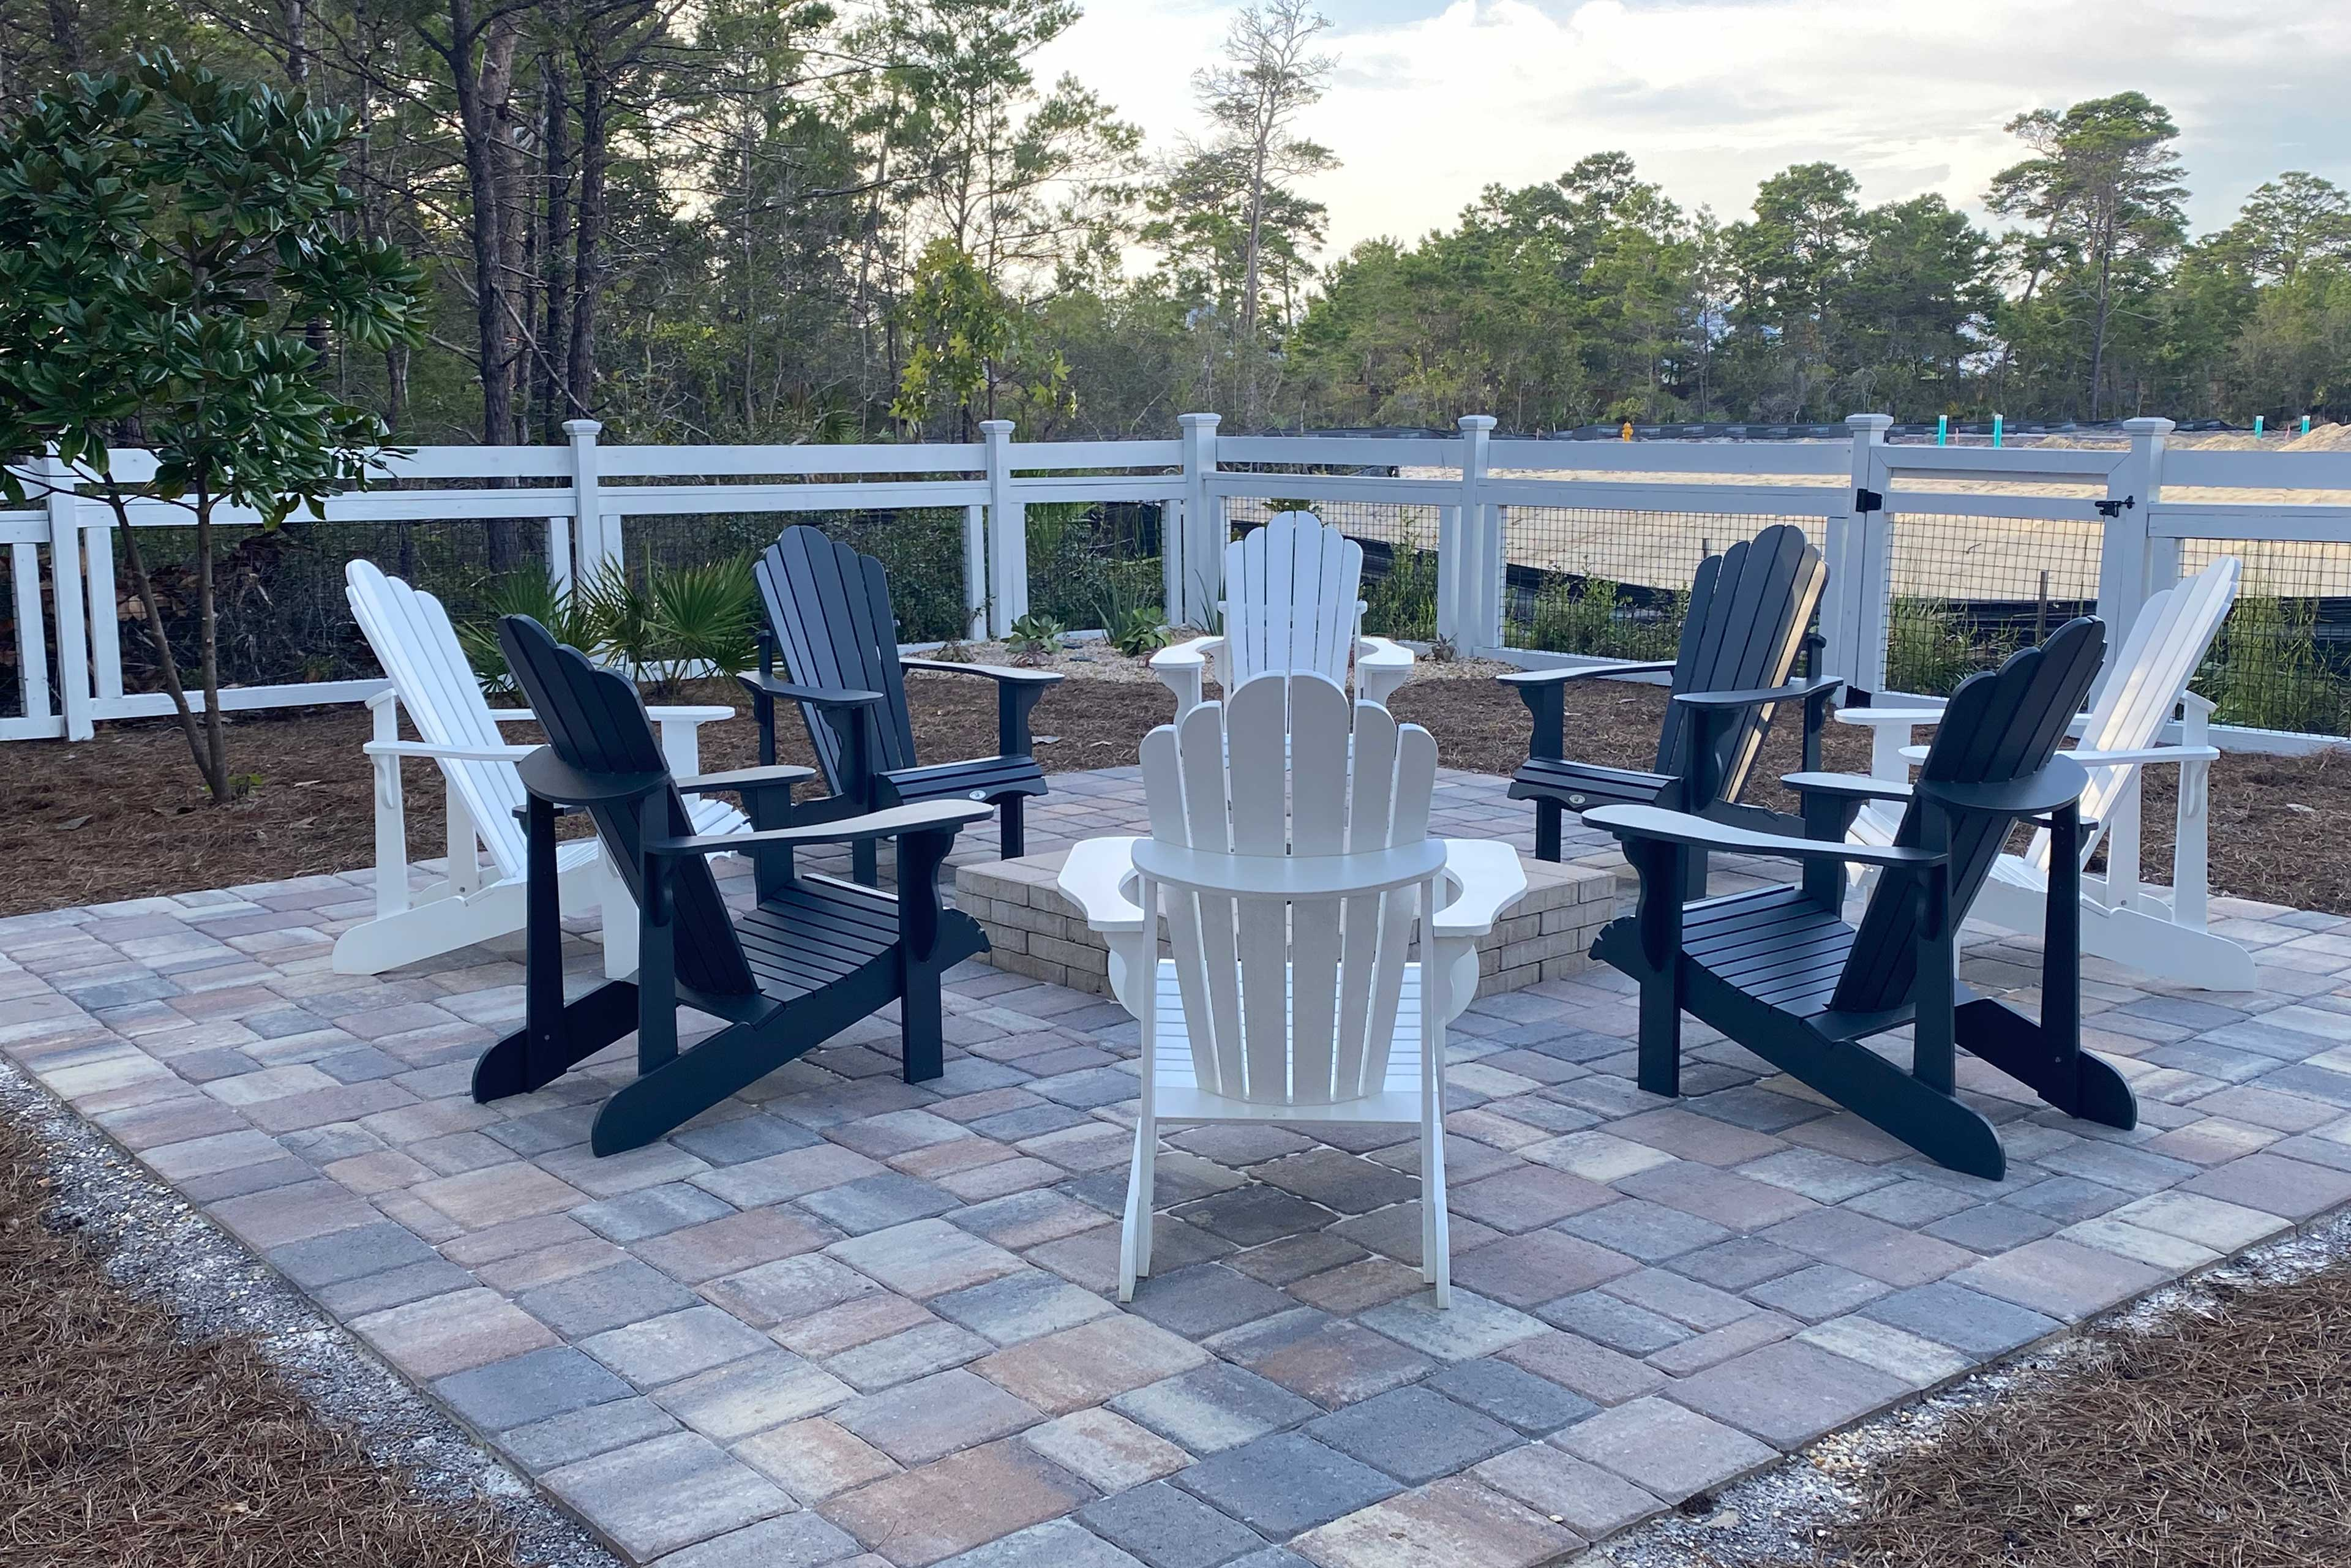 Enjoy the balmy Sunshine State weather from the comfort of your fenced backyard.